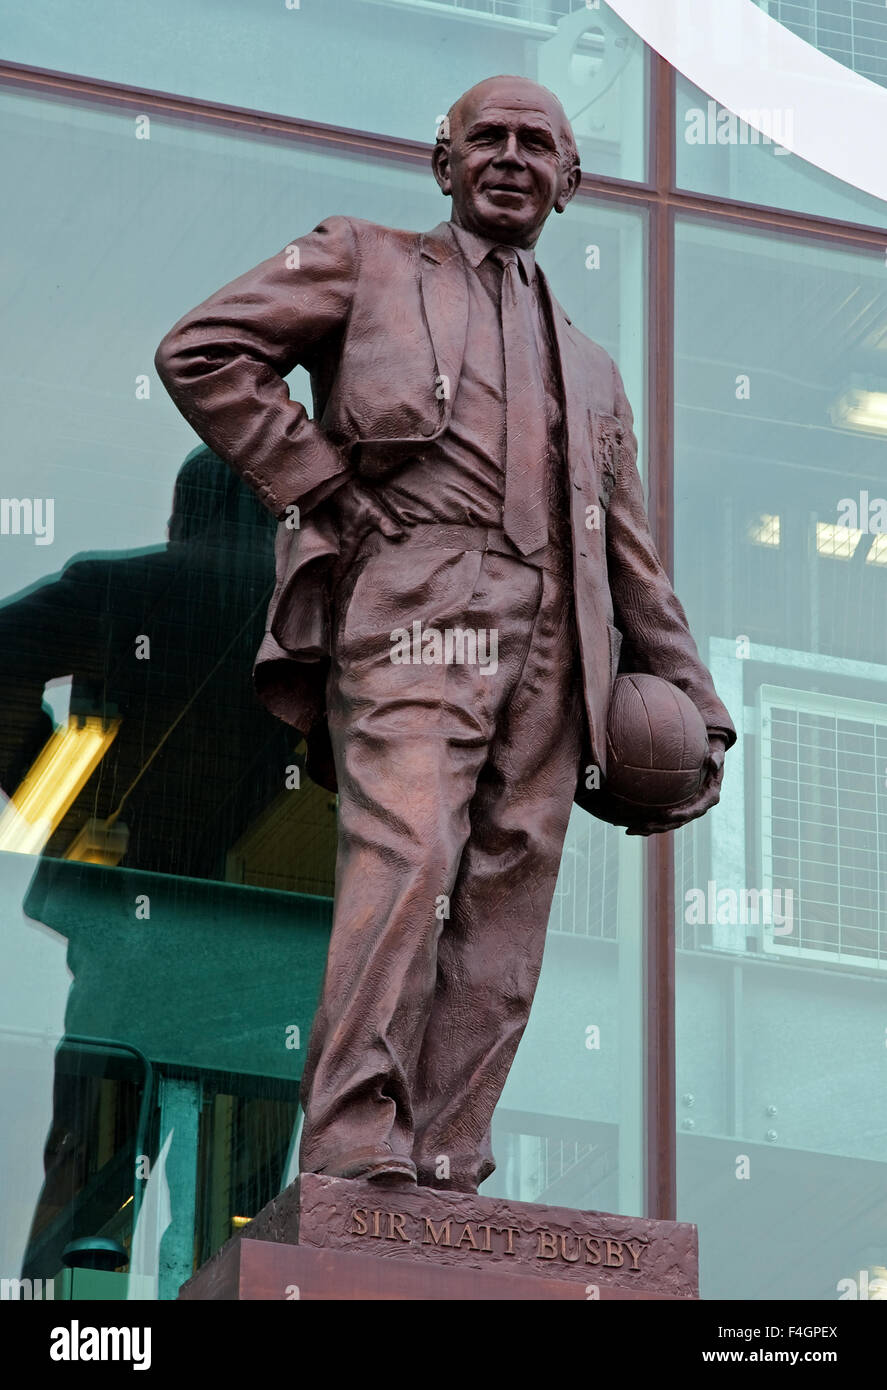 A statue of Sir Matt Busby outside Old Trafford in England celebrating his contribution to Manchester United Football - Stock Image